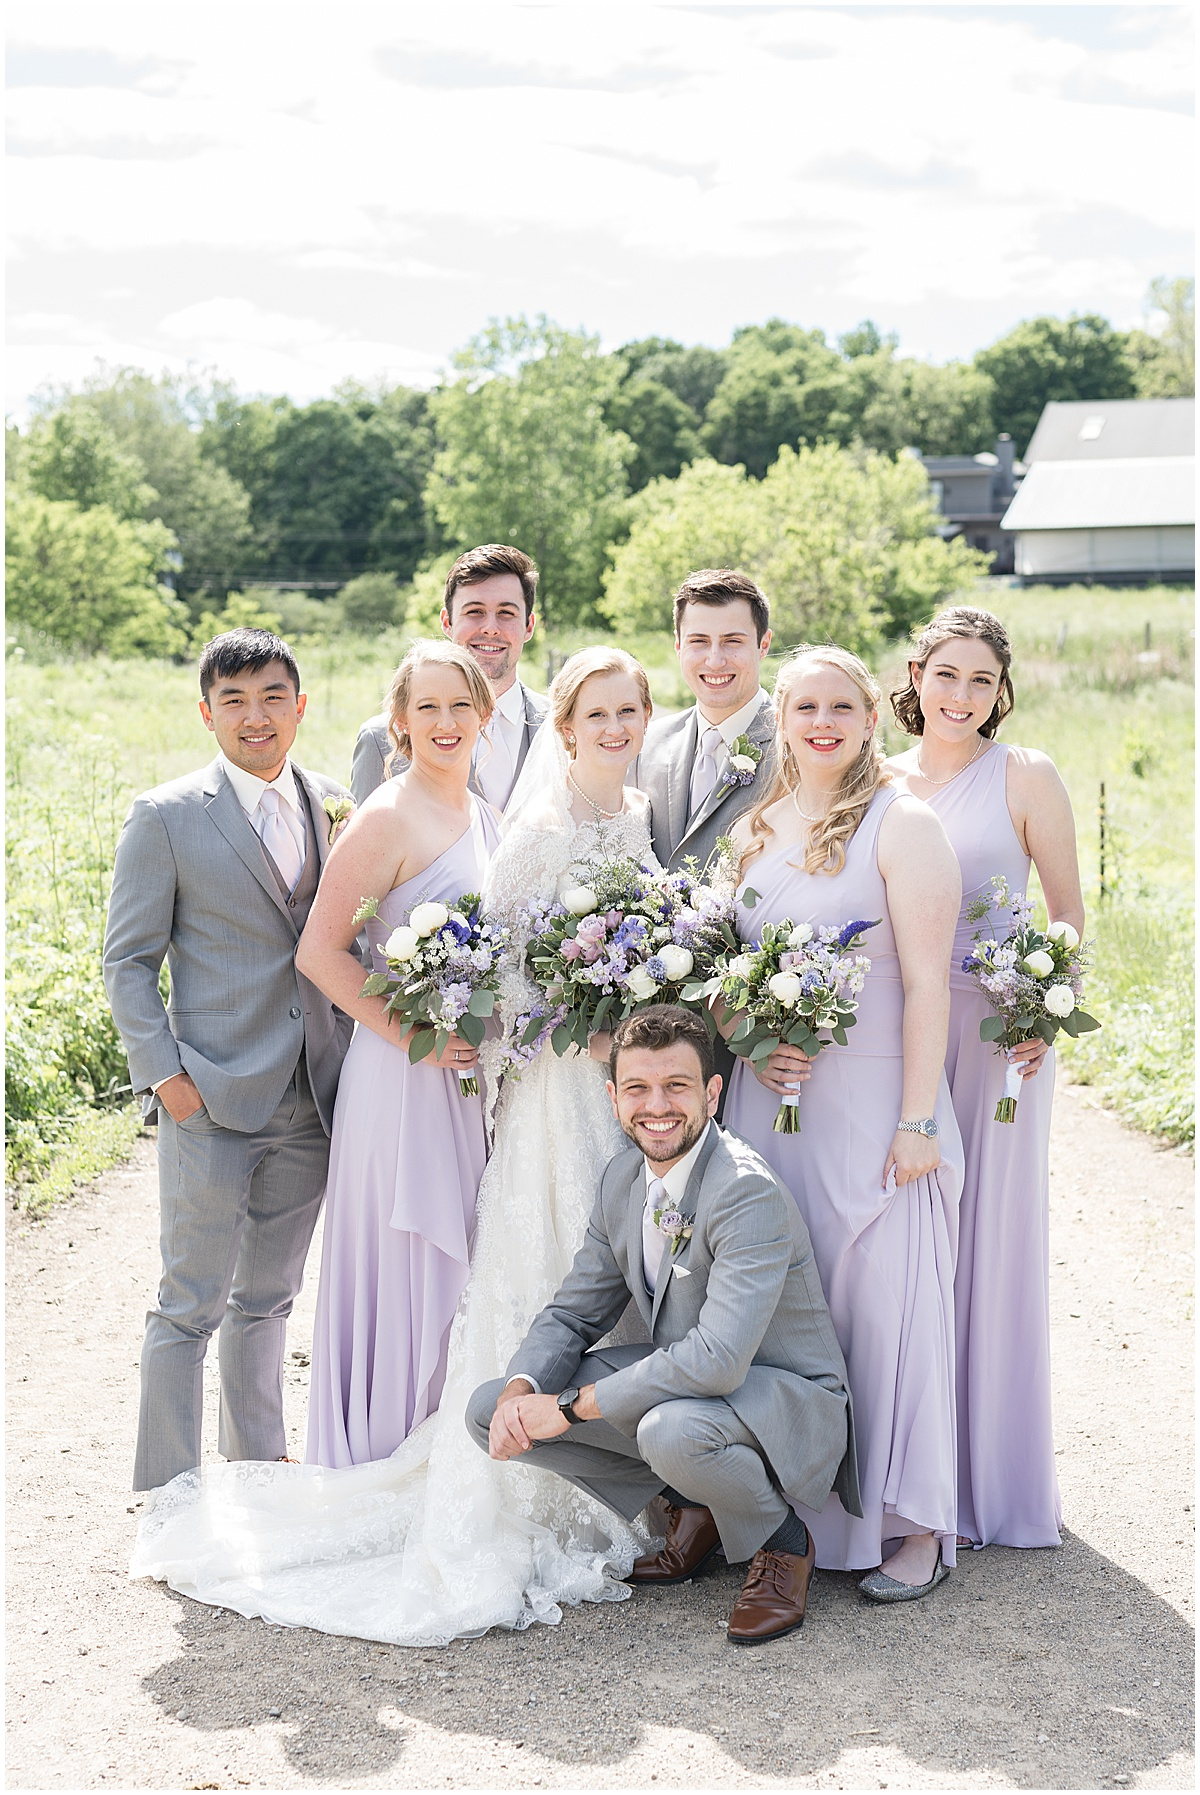 Bridal party portrait at Traders Point Creamery wedding in Zionsville, Indiana